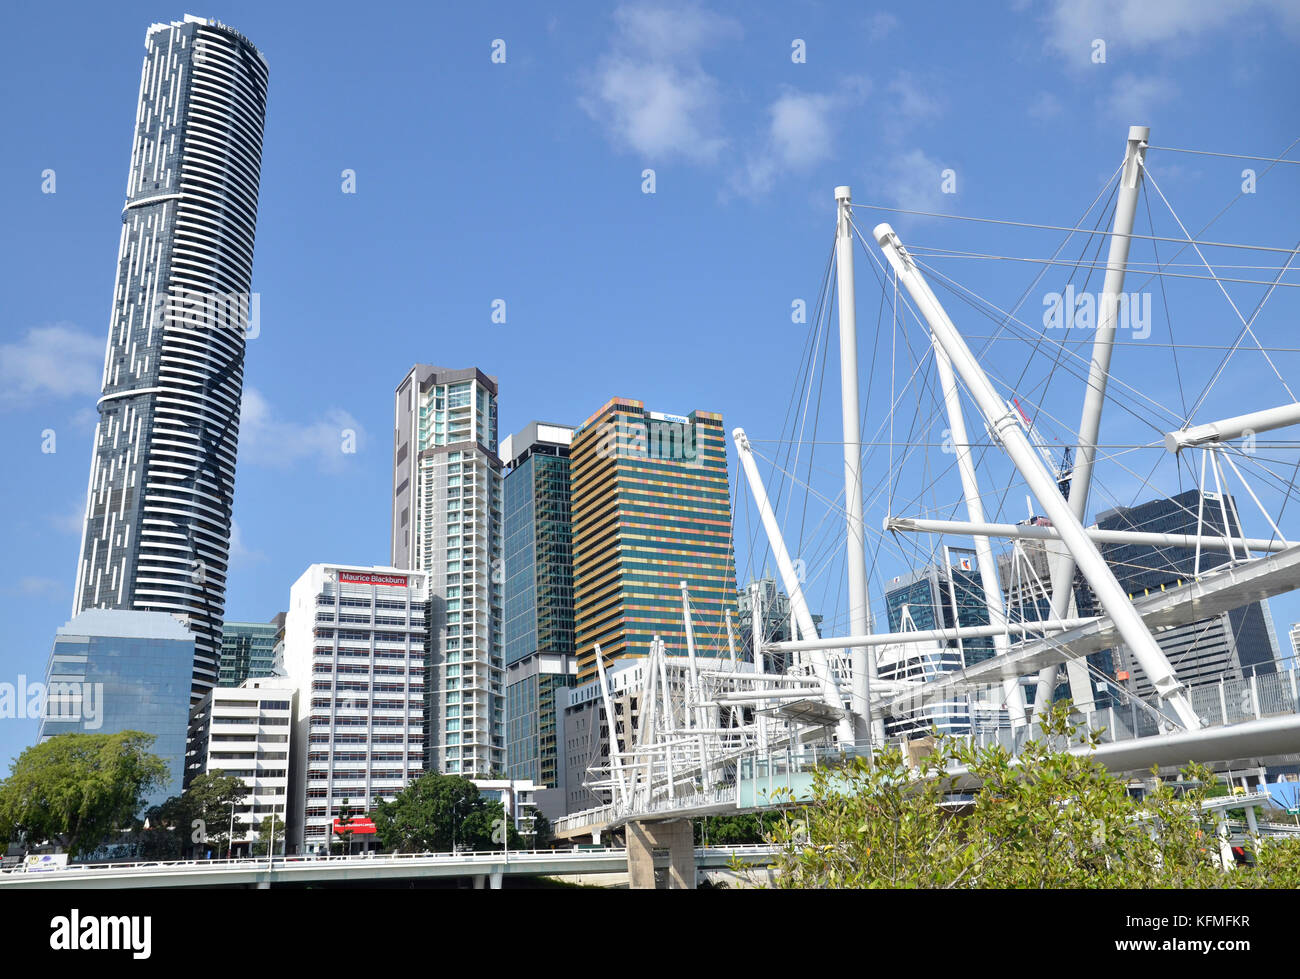 The Kurilpa Bridge, a pedestrian and cycle bridge over the Brisbane River, in Brisbane, Queensland, with the Brisbane - Stock Image